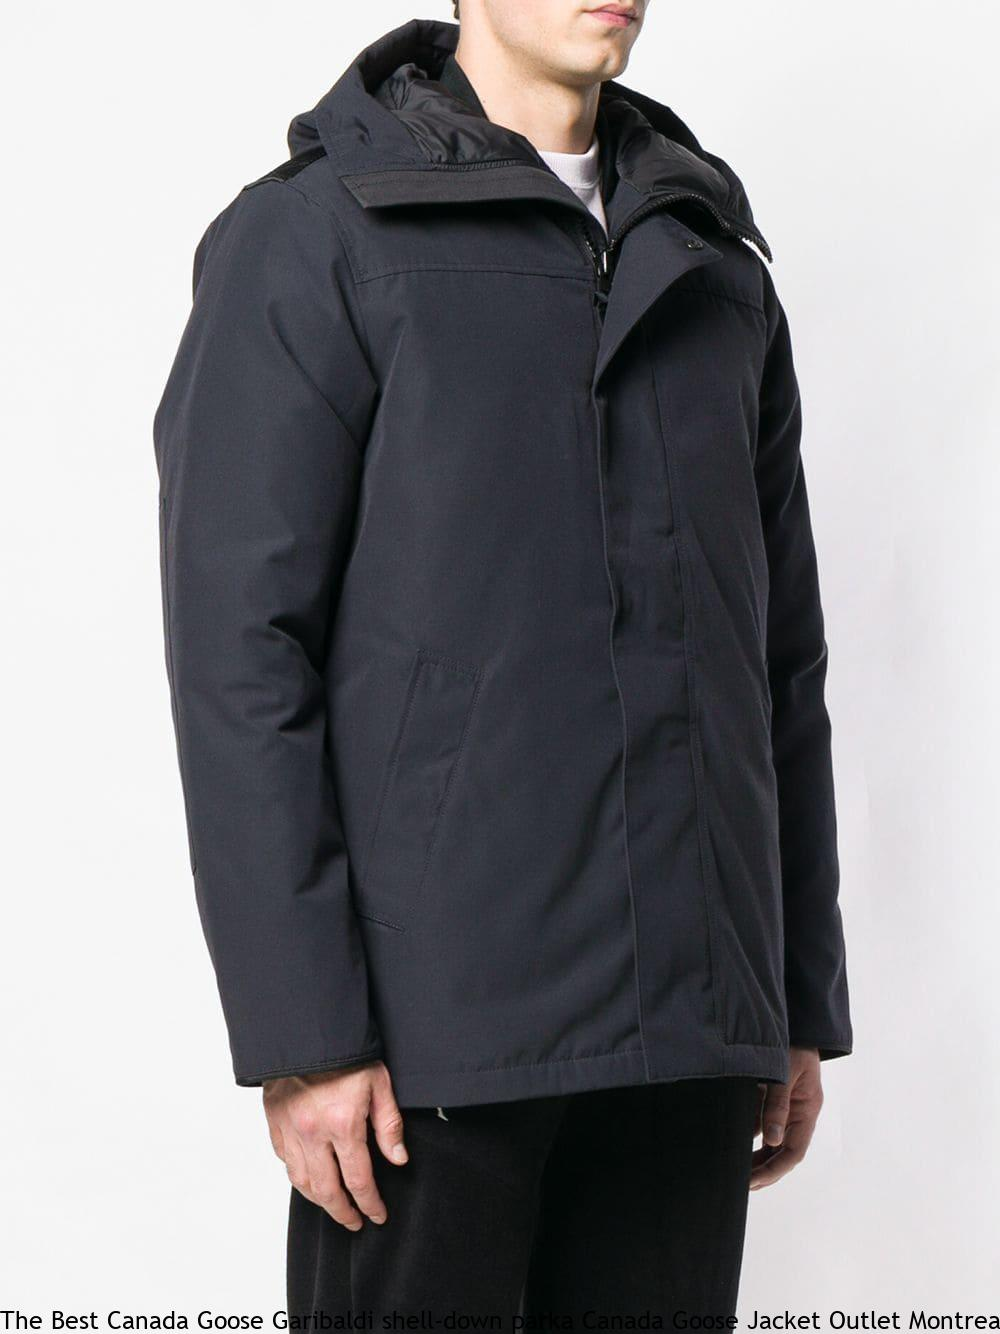 3fc4bde769e The Best Canada Goose Garibaldi shell-down parka Canada Goose Jacket Outlet  Montreal 13303249